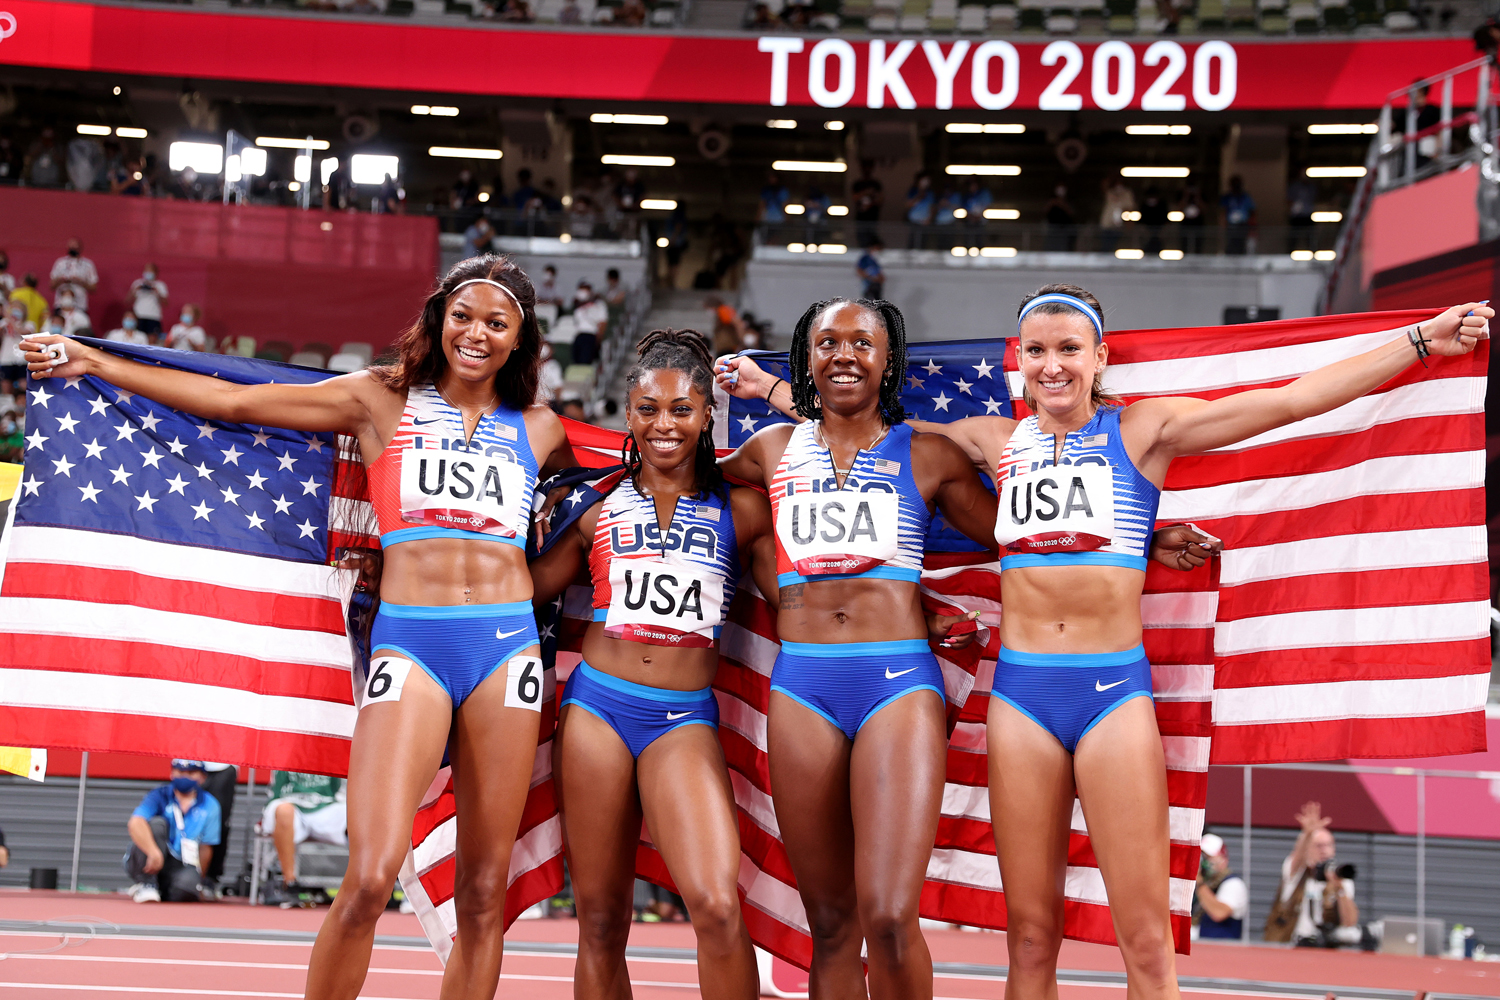 Javianne Oliver, Teahna Daniels, Jenna Prandini and Gabrielle Thomas of Team United States celebrate winning the silver medal in the Women's 4 x 100m